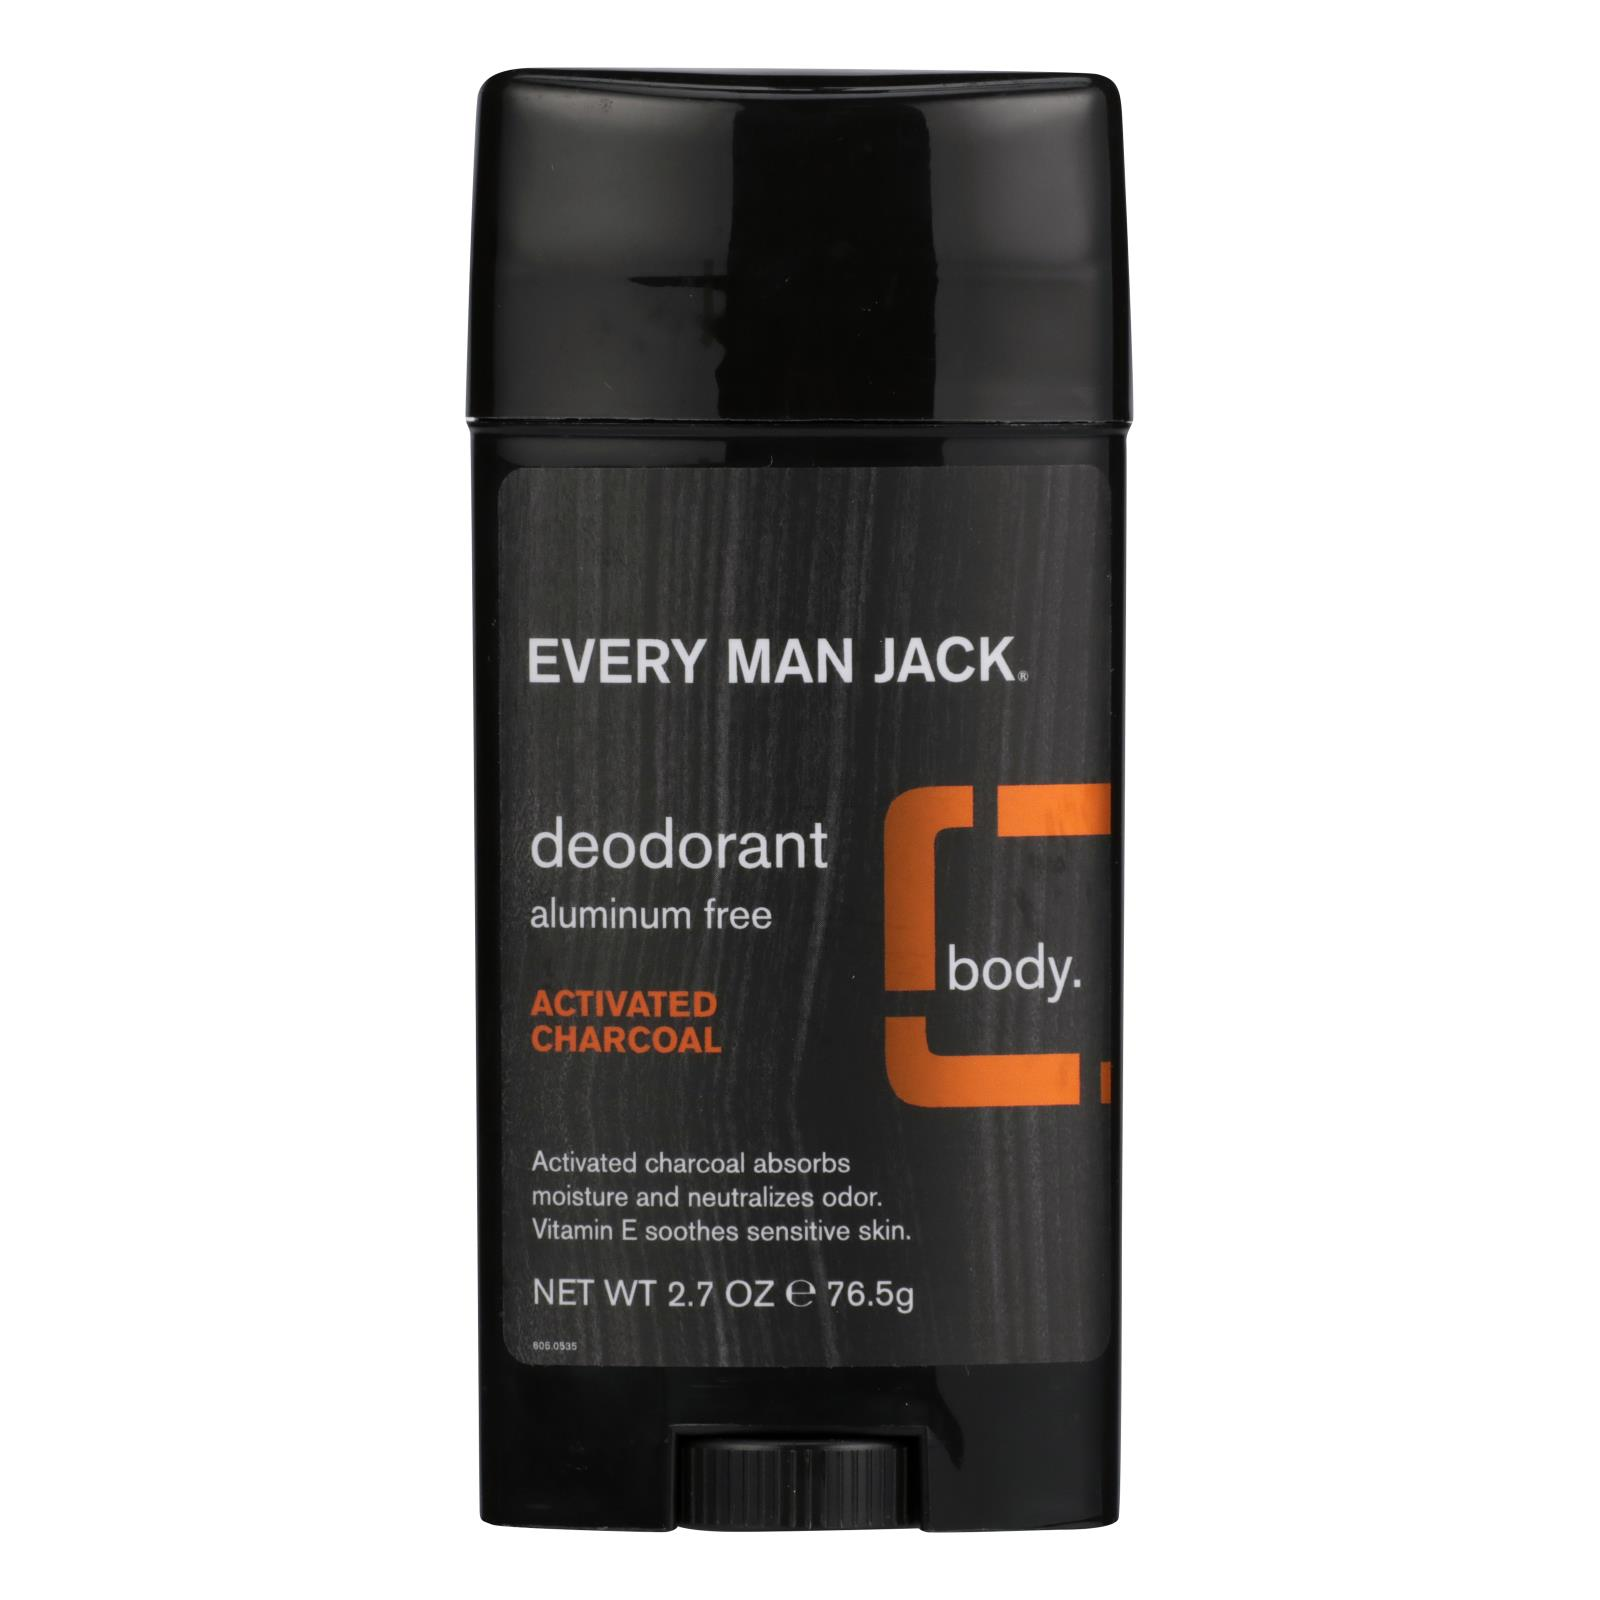 Every Man Jack - Deodorant Activated Charcoal - 1 Each - 2.7 OZ